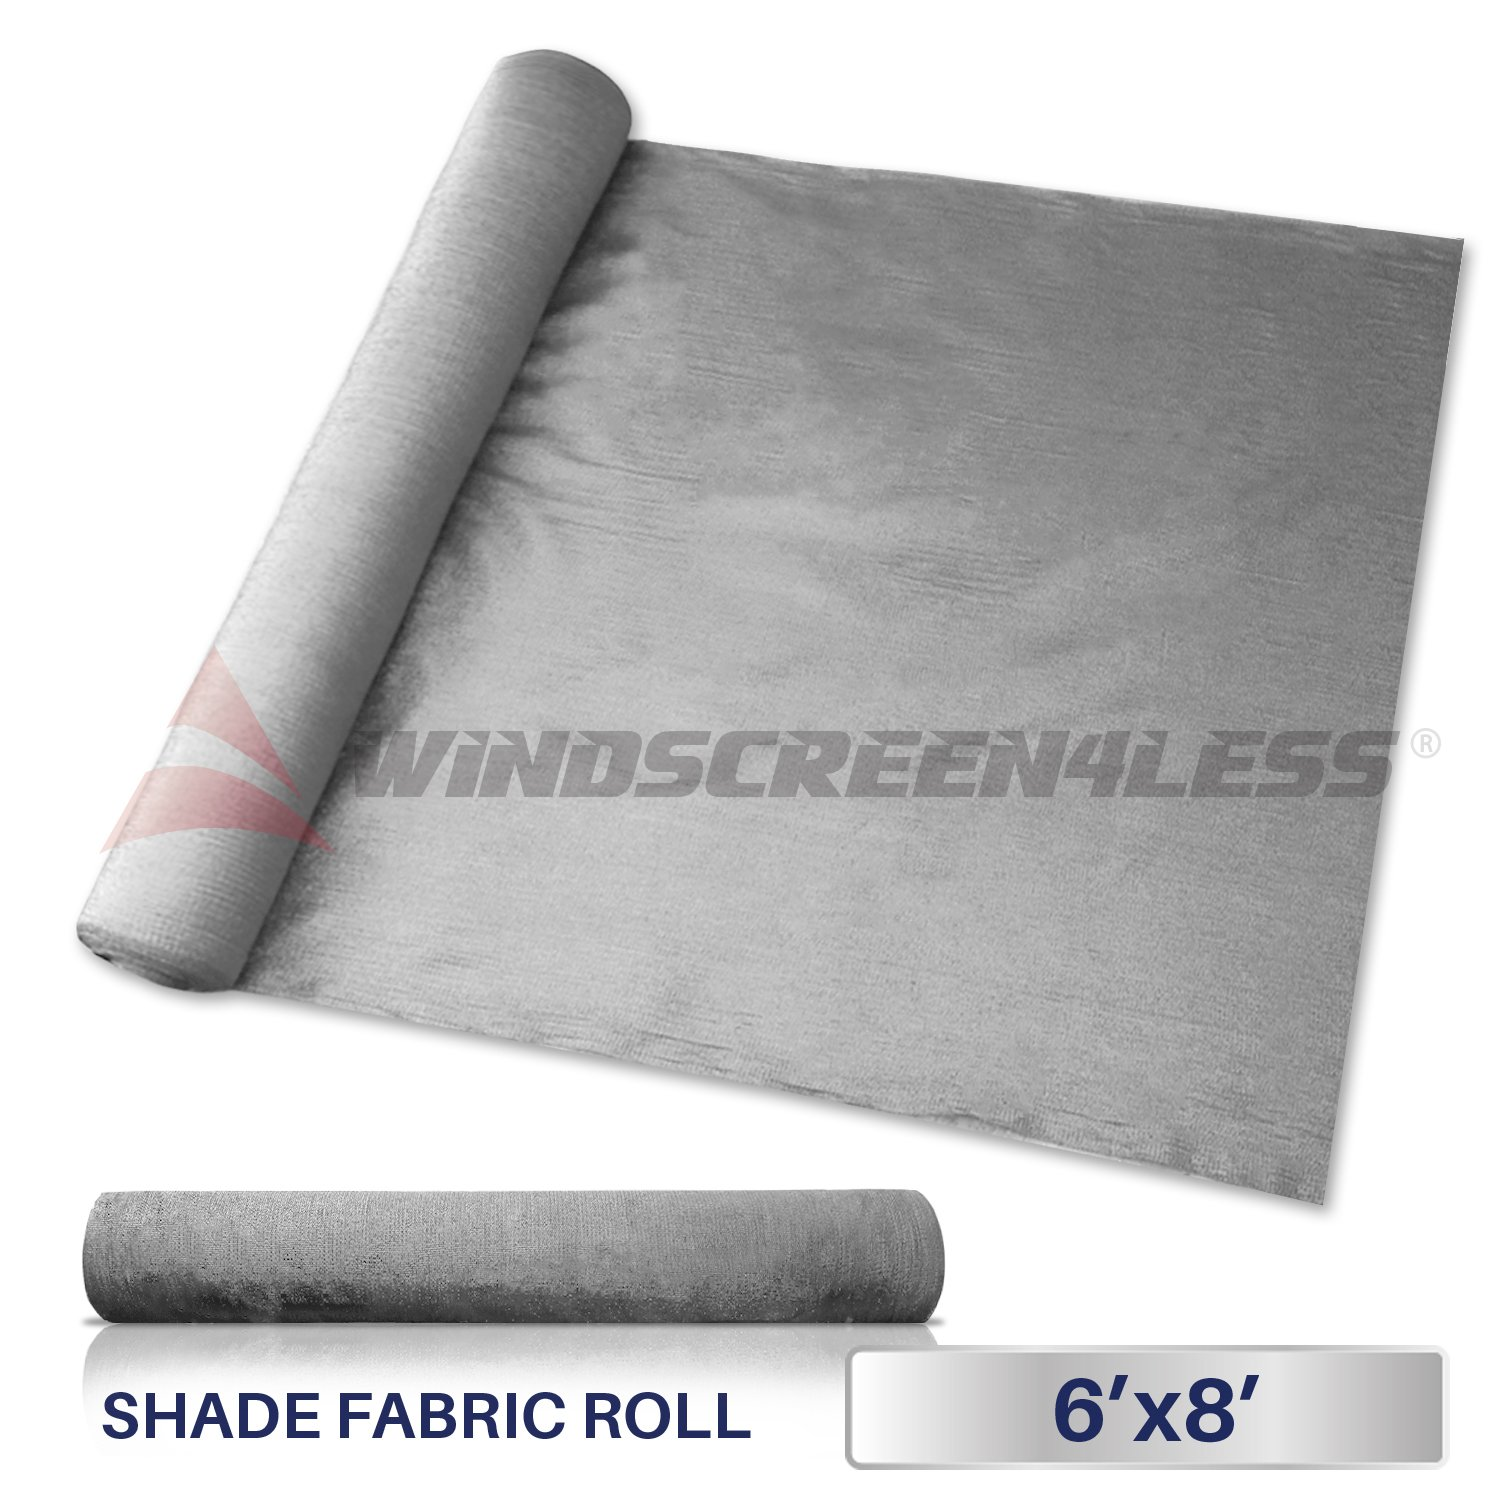 Windscreen4less Light Grey Sunblock Shade Cloth,95% UV Block Shade Fabric Roll 6ft x 8ft